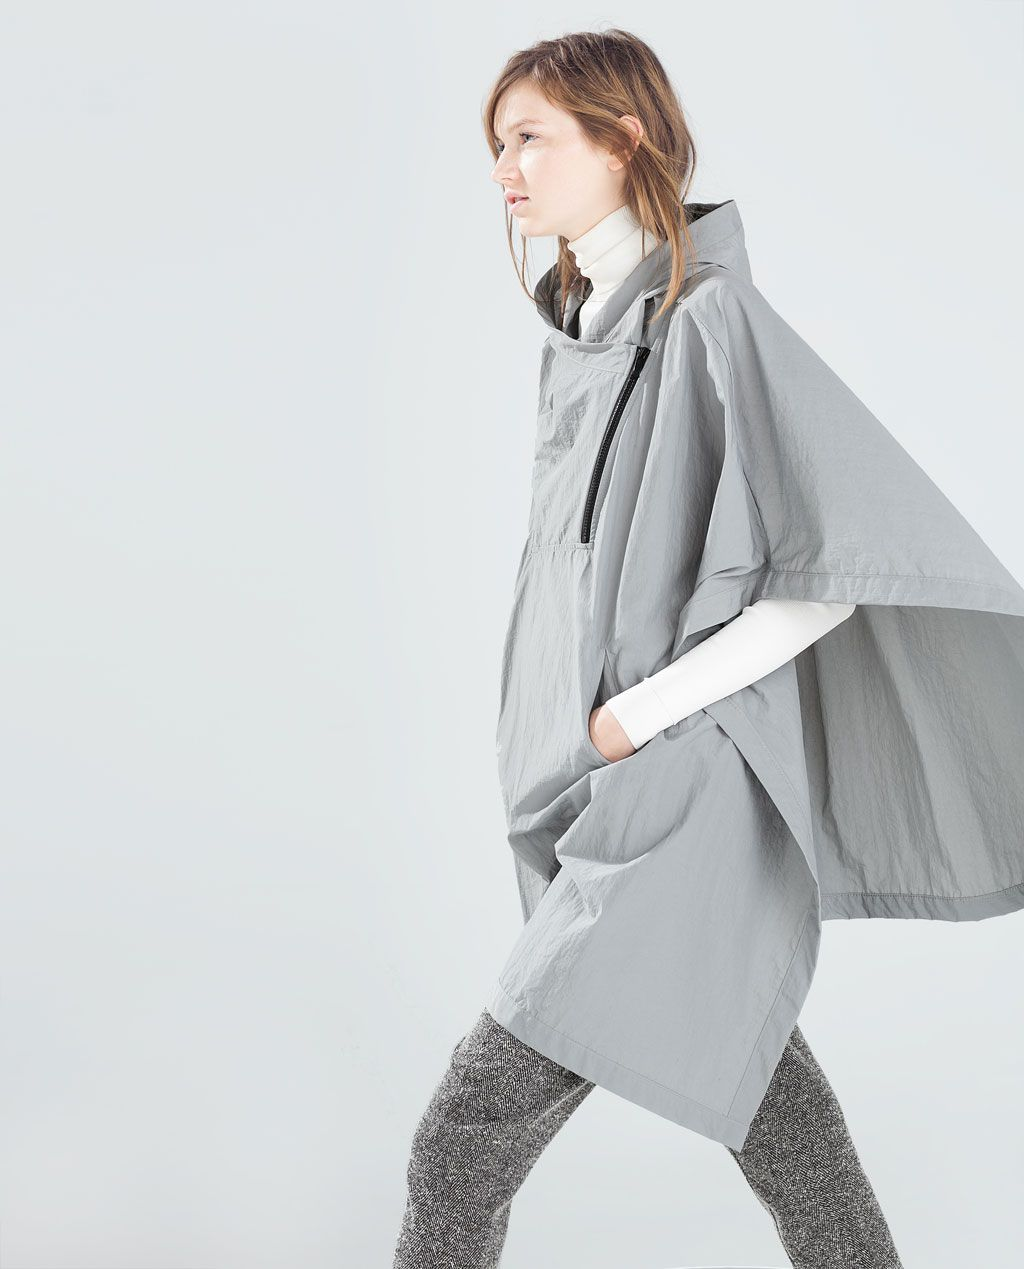 image 1 of waterproof poncho from zara what to buy pinterest cycle chic zara and all. Black Bedroom Furniture Sets. Home Design Ideas